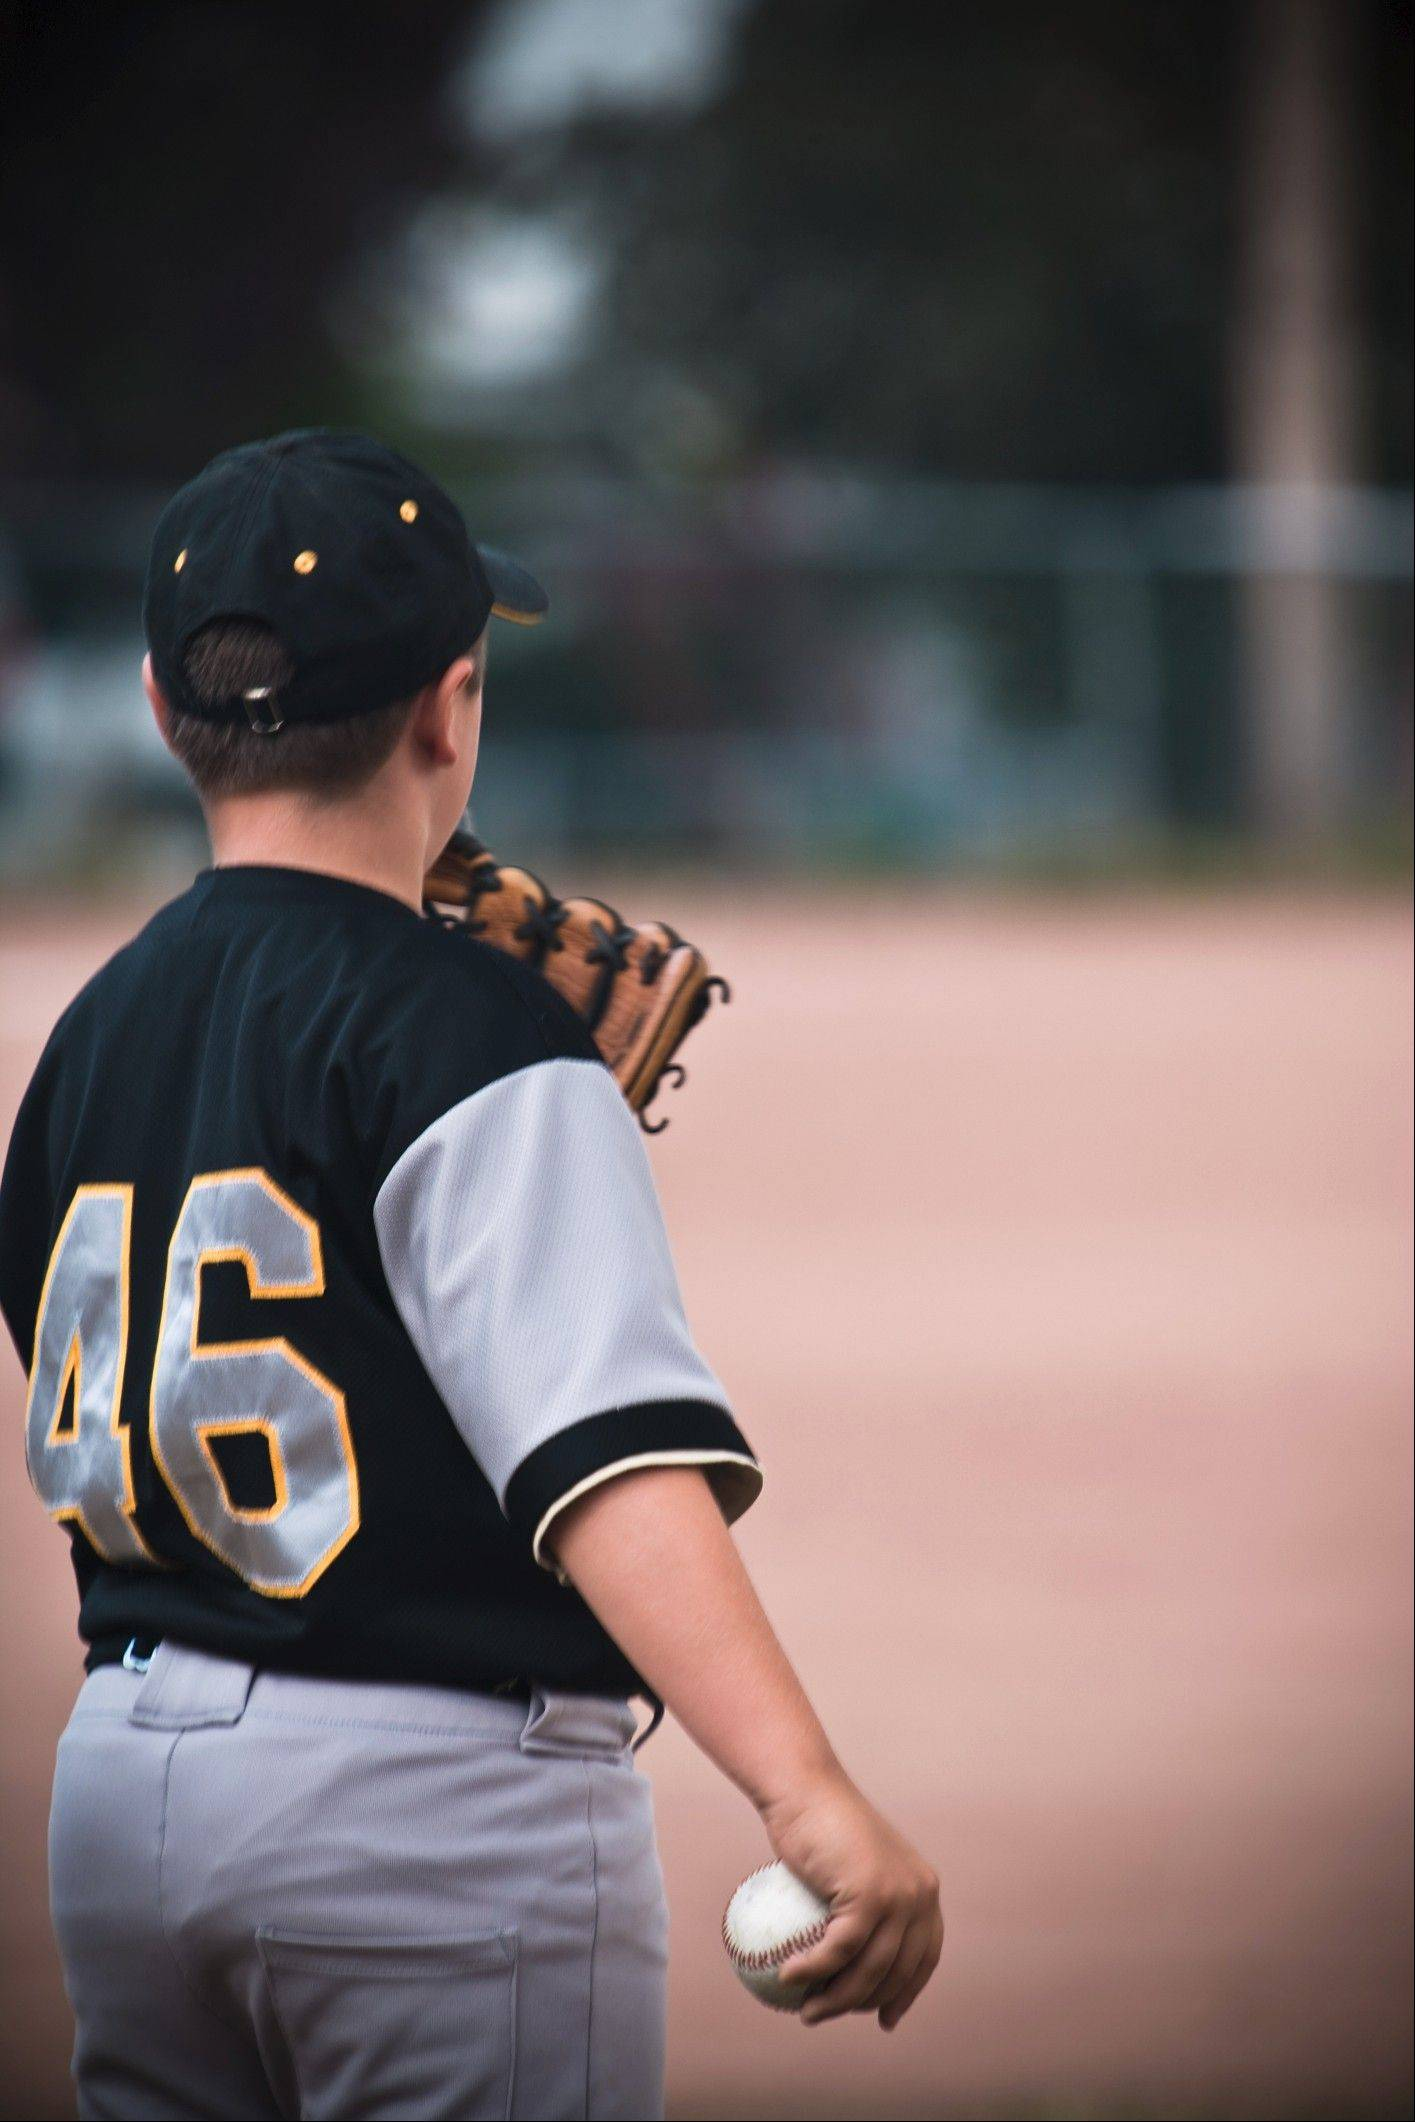 There has been a fivefold increase since 2000 in the number of serious elbow and shoulder injuries among youth baseball and softball players, according to the American Orthopaedic Society for Sports Medicine.